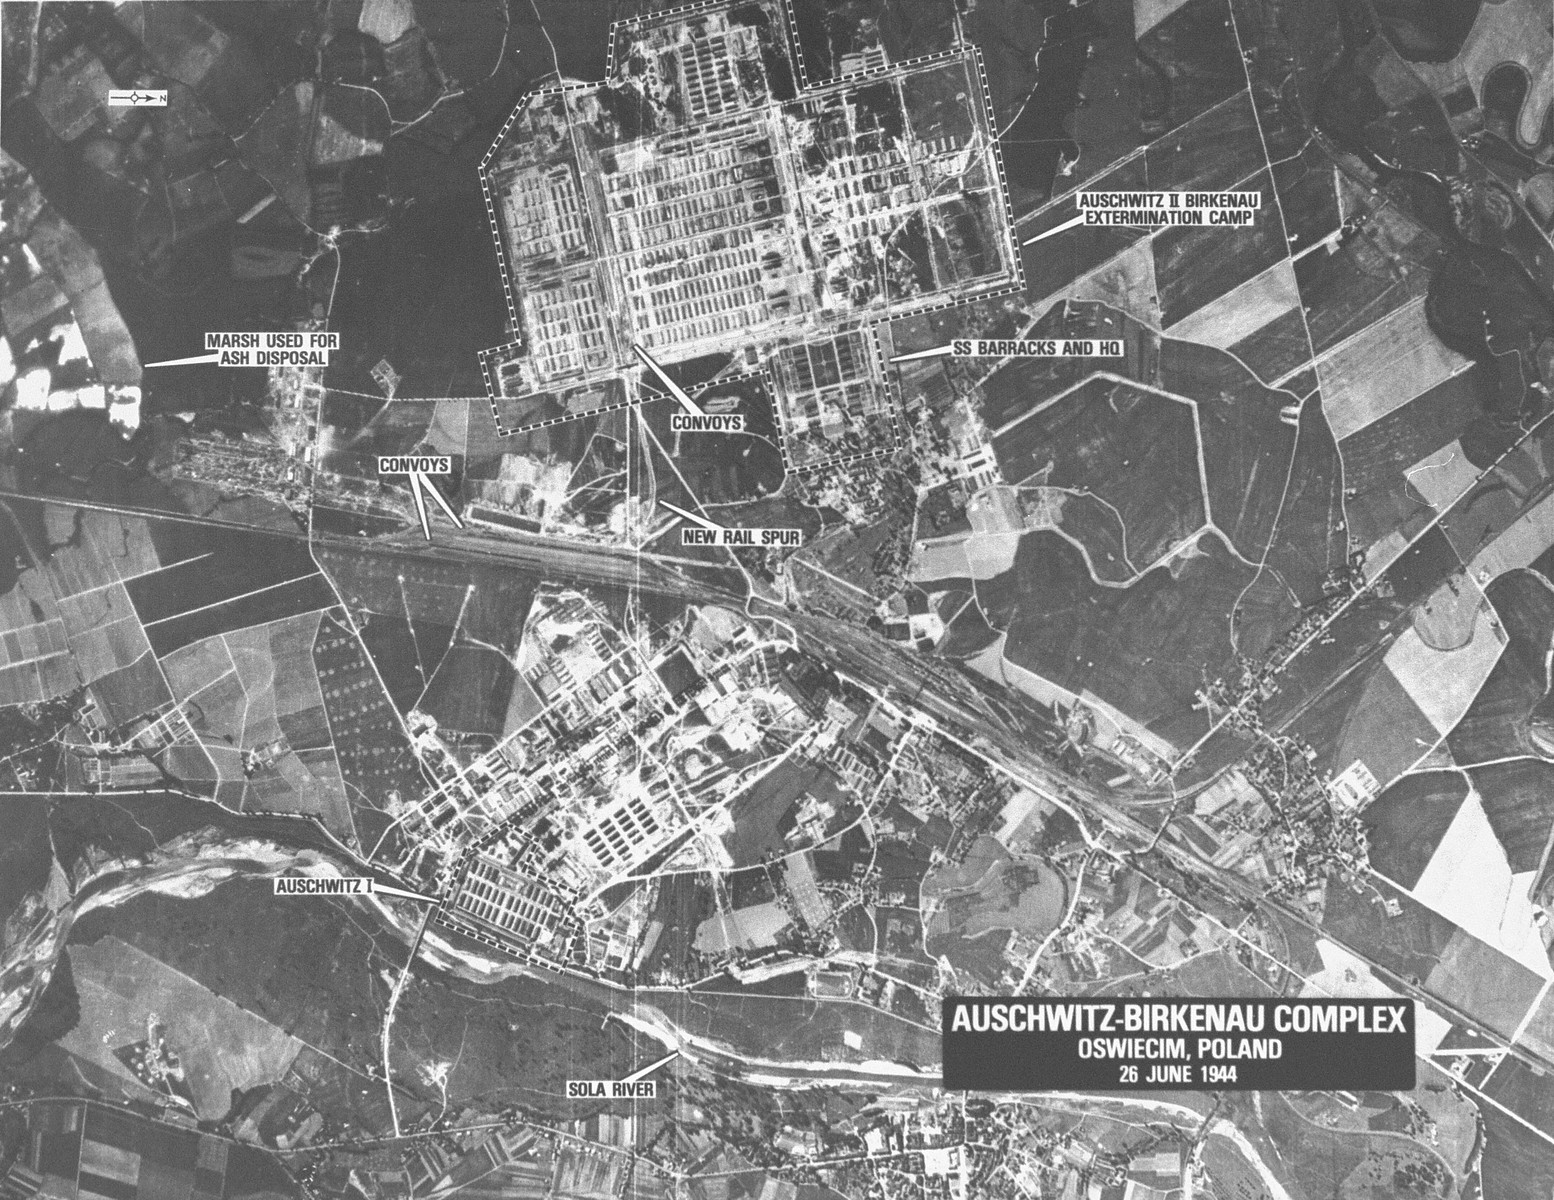 "An aerial reconnaissance photograph of the Auschwitz concentration camp showing Auschwitz I and Auschwitz II (Birkenau).  Mission:  60 PR/522 60 SQ;  Scale: 1/60,000;  Focal Length: 6"";  Altitude: 30,000'."